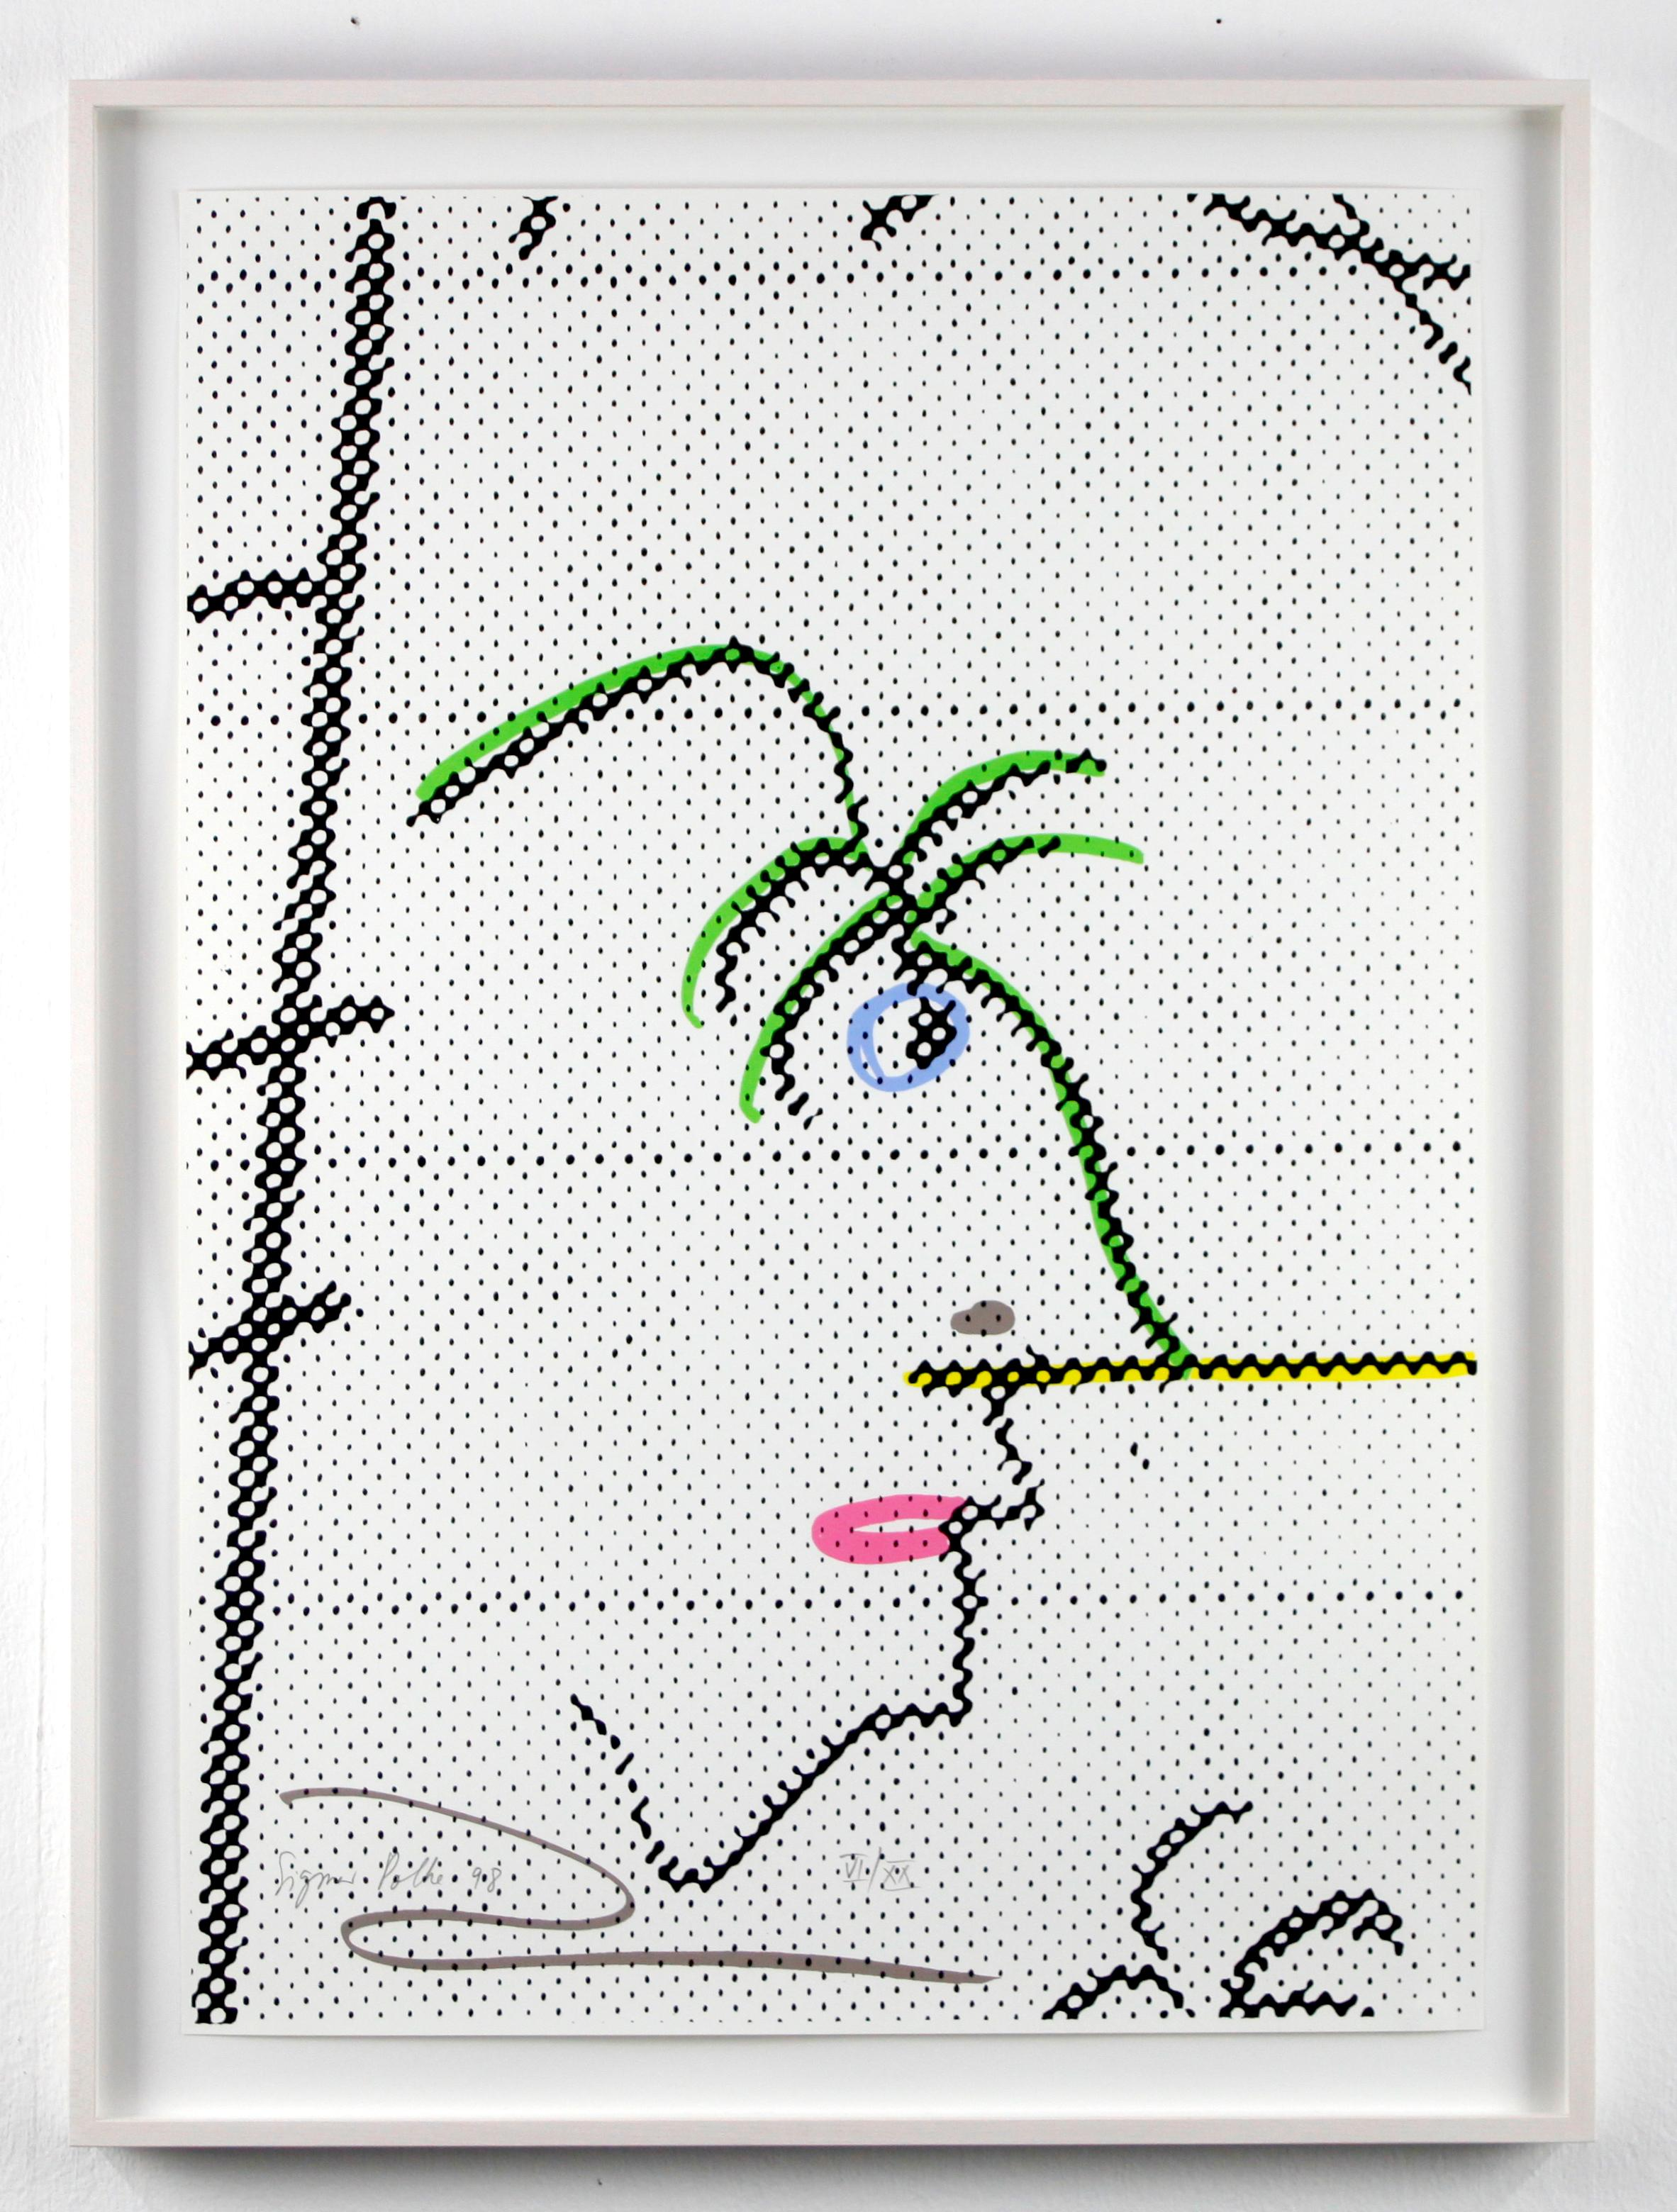 Oase / Offsetprint / Schoellershammer Cardboard / signed and numbered by Polke